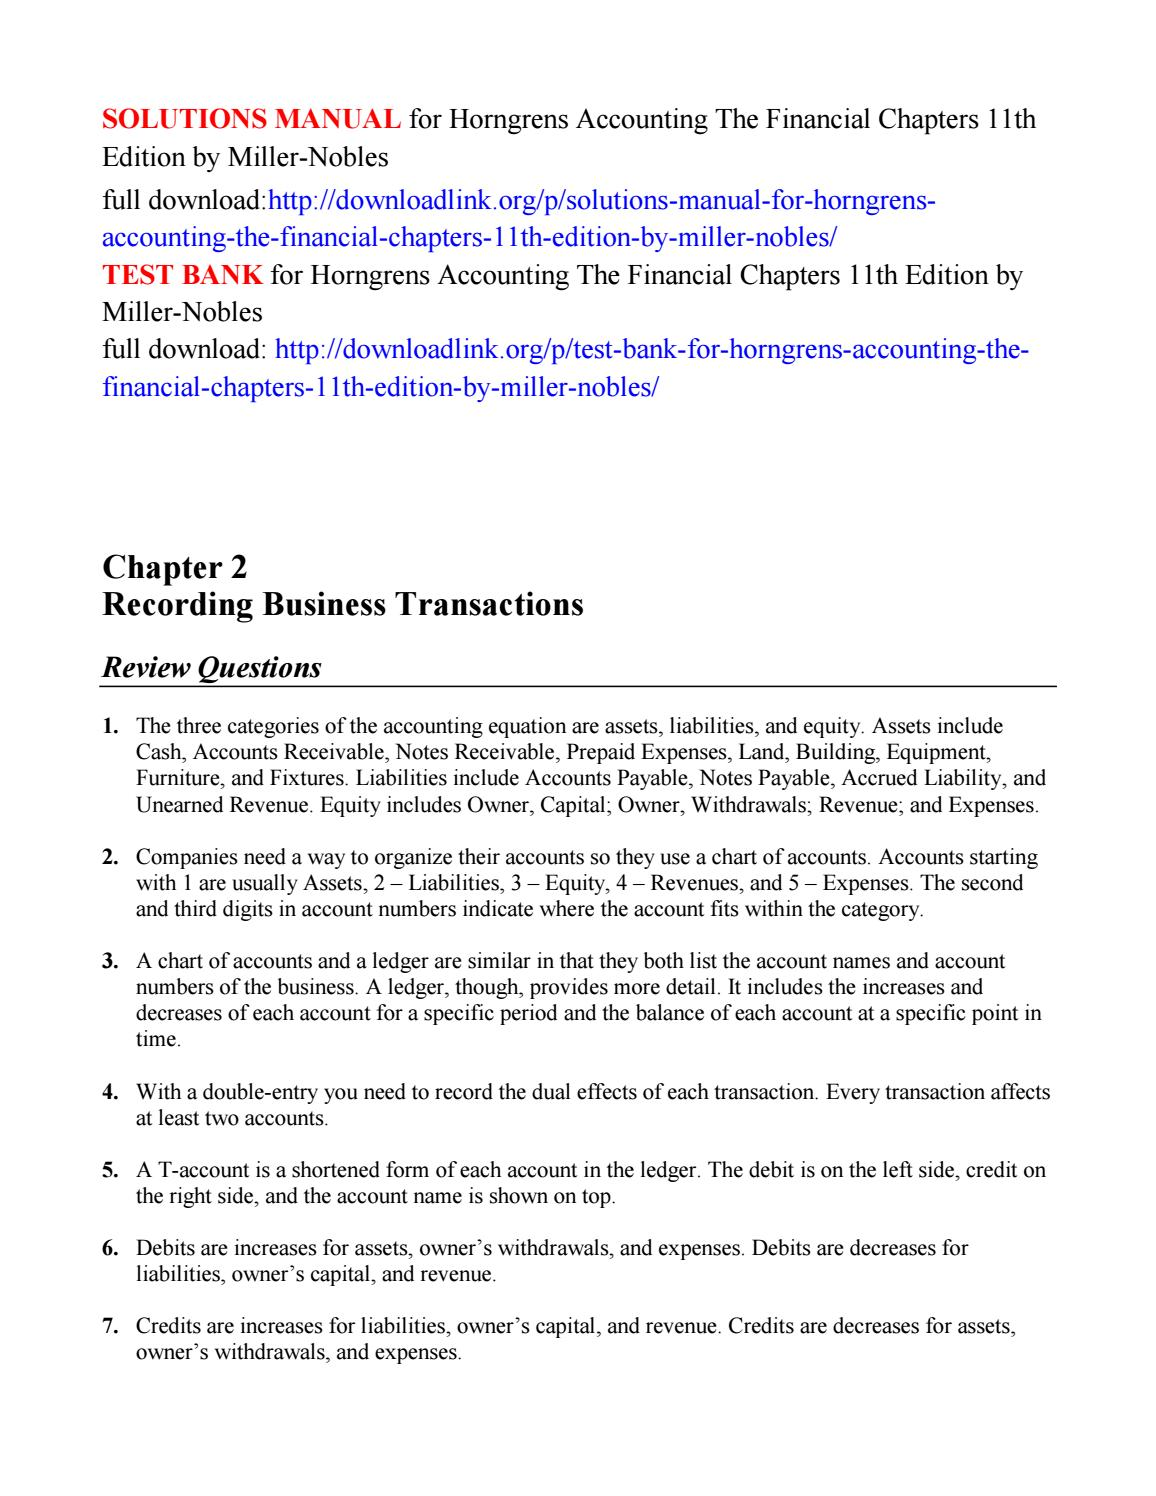 solutions manual for horngrens accounting the financial chapters rh issuu com financial accounting for executives and mbas 3rd edition solution manual financial accounting for mbas 4th edition solutions manual